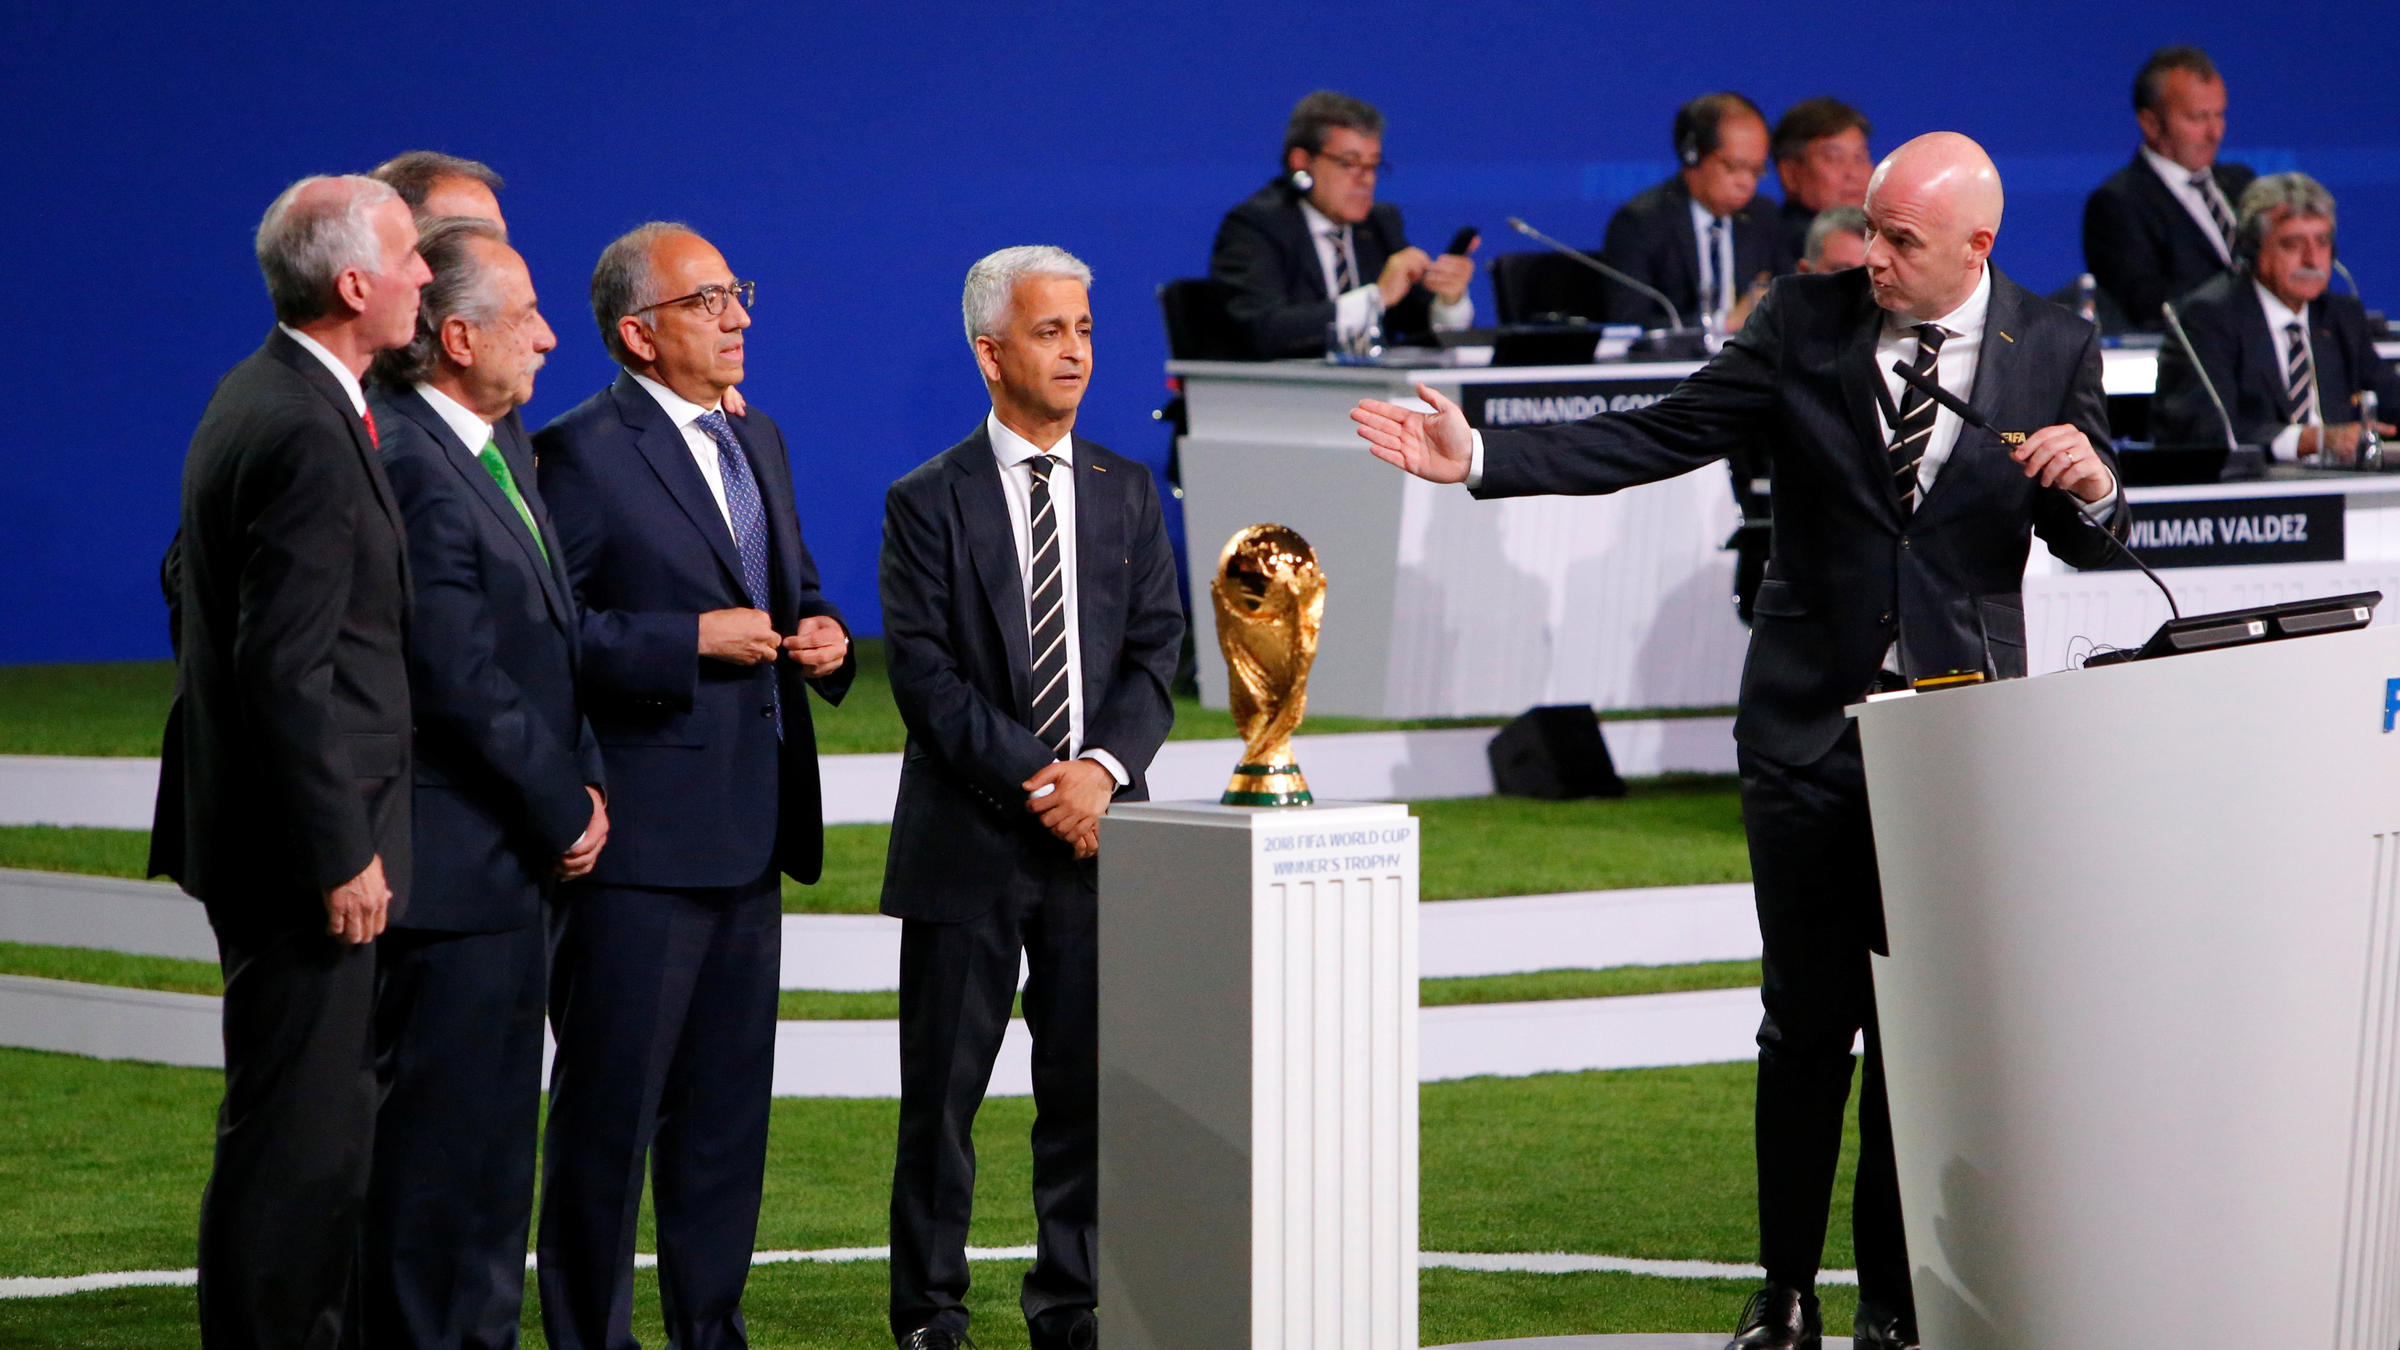 World Cup host Russian Federation  spent billions, but will its economy benefit?